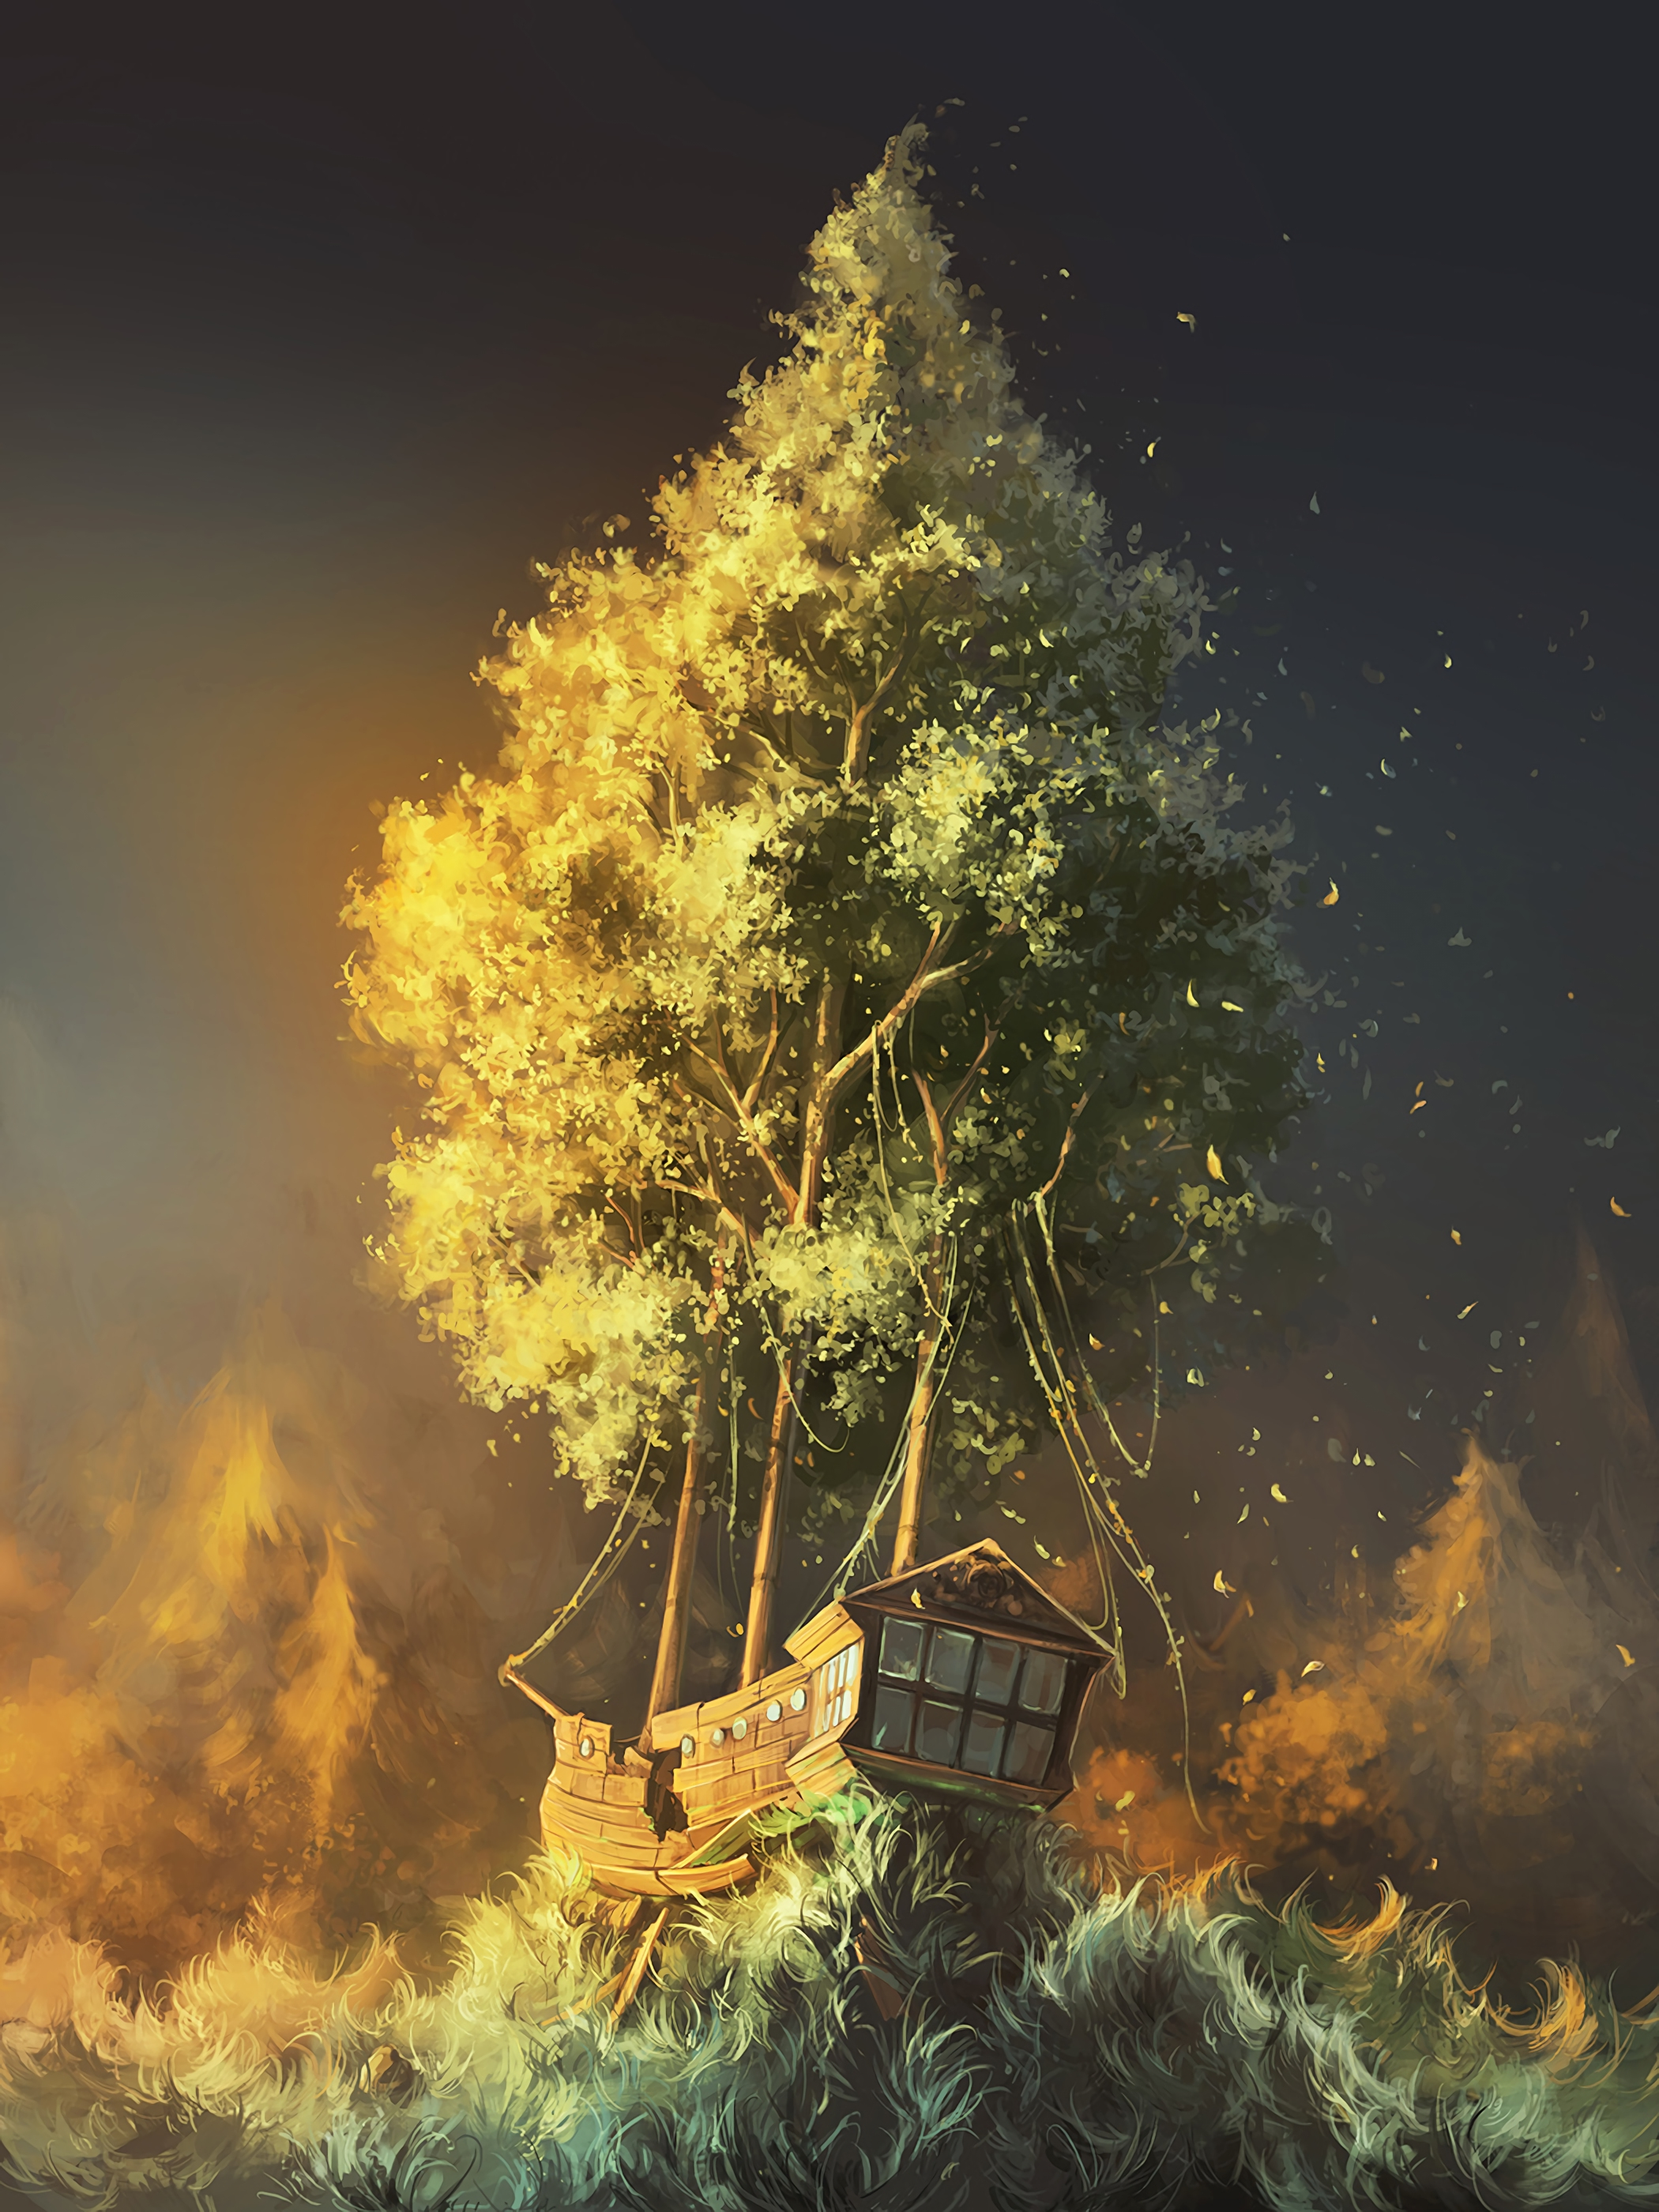 140581 Screensavers and Wallpapers Art for phone. Download Art, Fantasy, Wood, Tree, Ship pictures for free